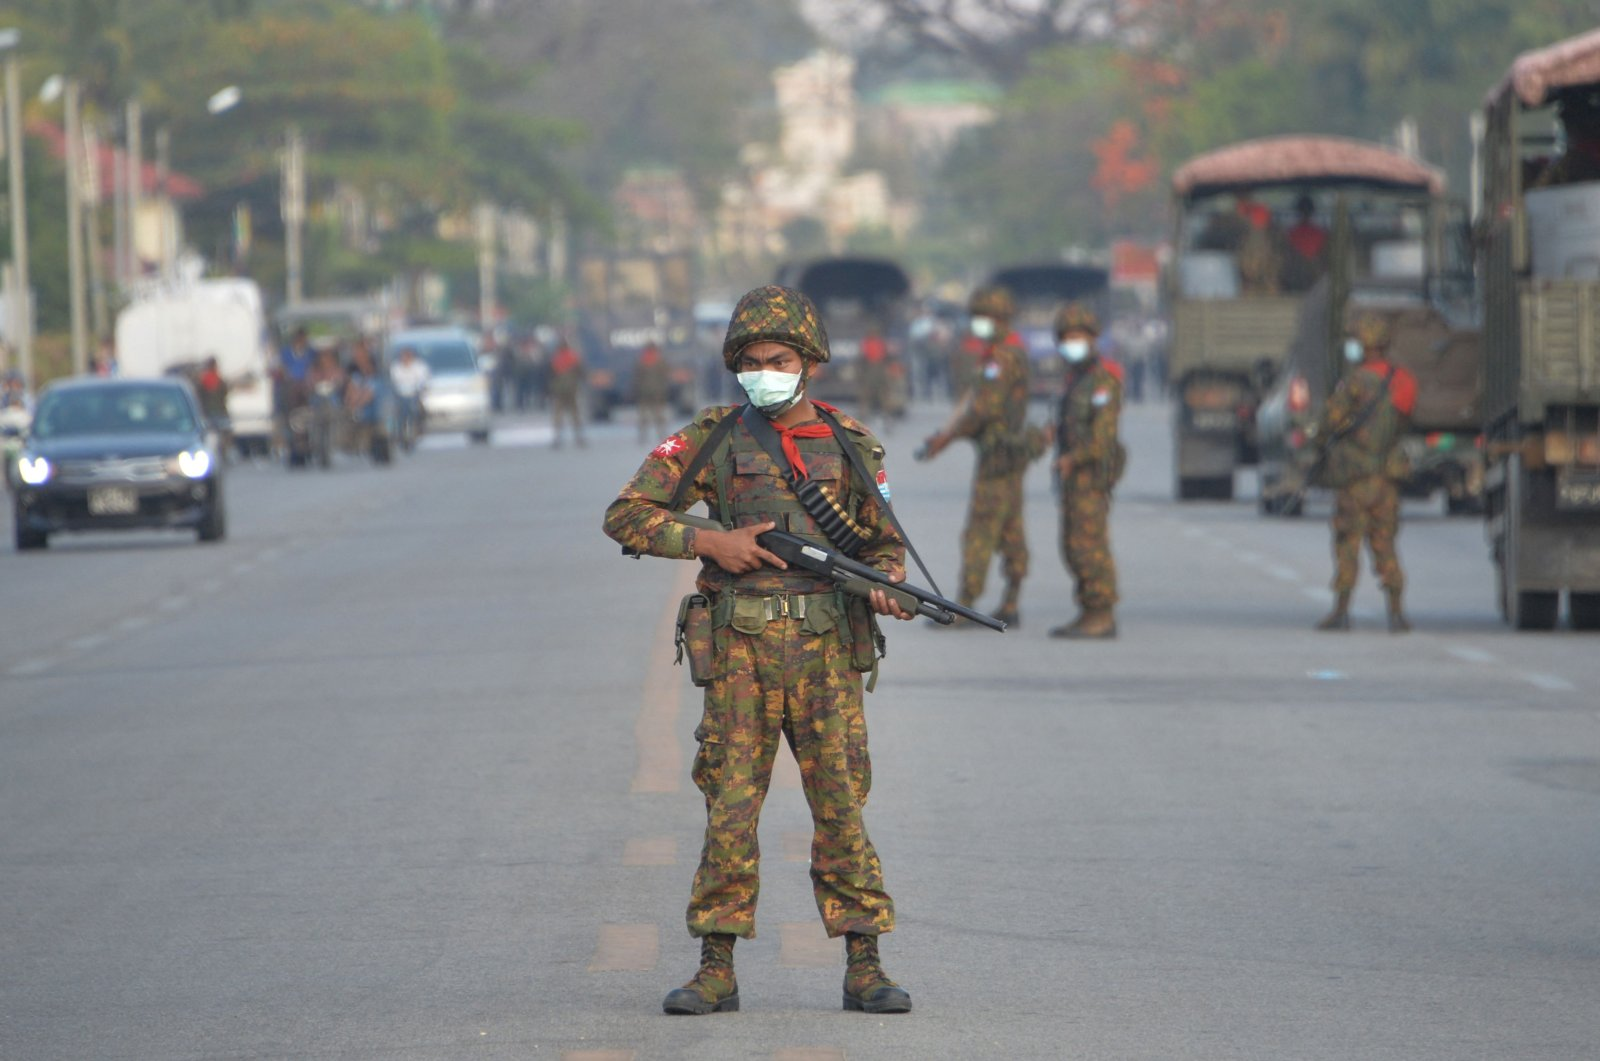 A Myanmar soldier stands guard on a road amid demonstrations against the military coup in Naypyidaw on Feb. 17, 2021. (AFP Photo)